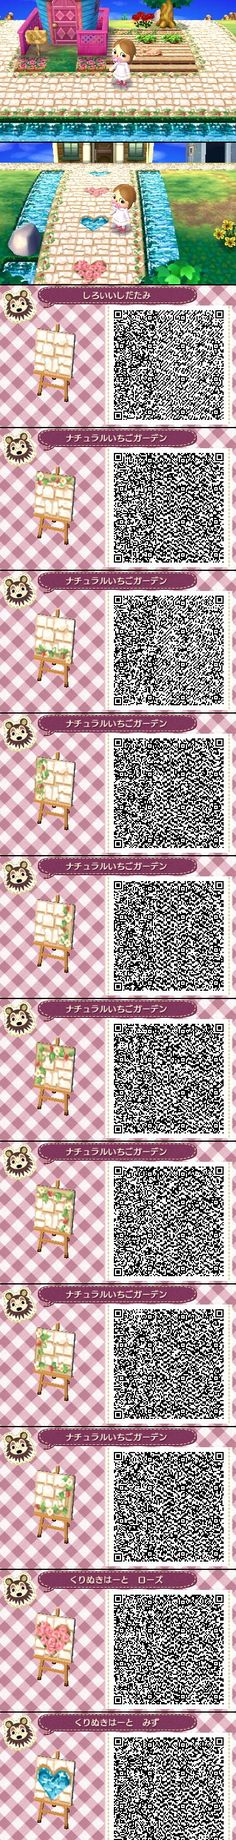 Animal Crossing New Leaf QR codes Pathway